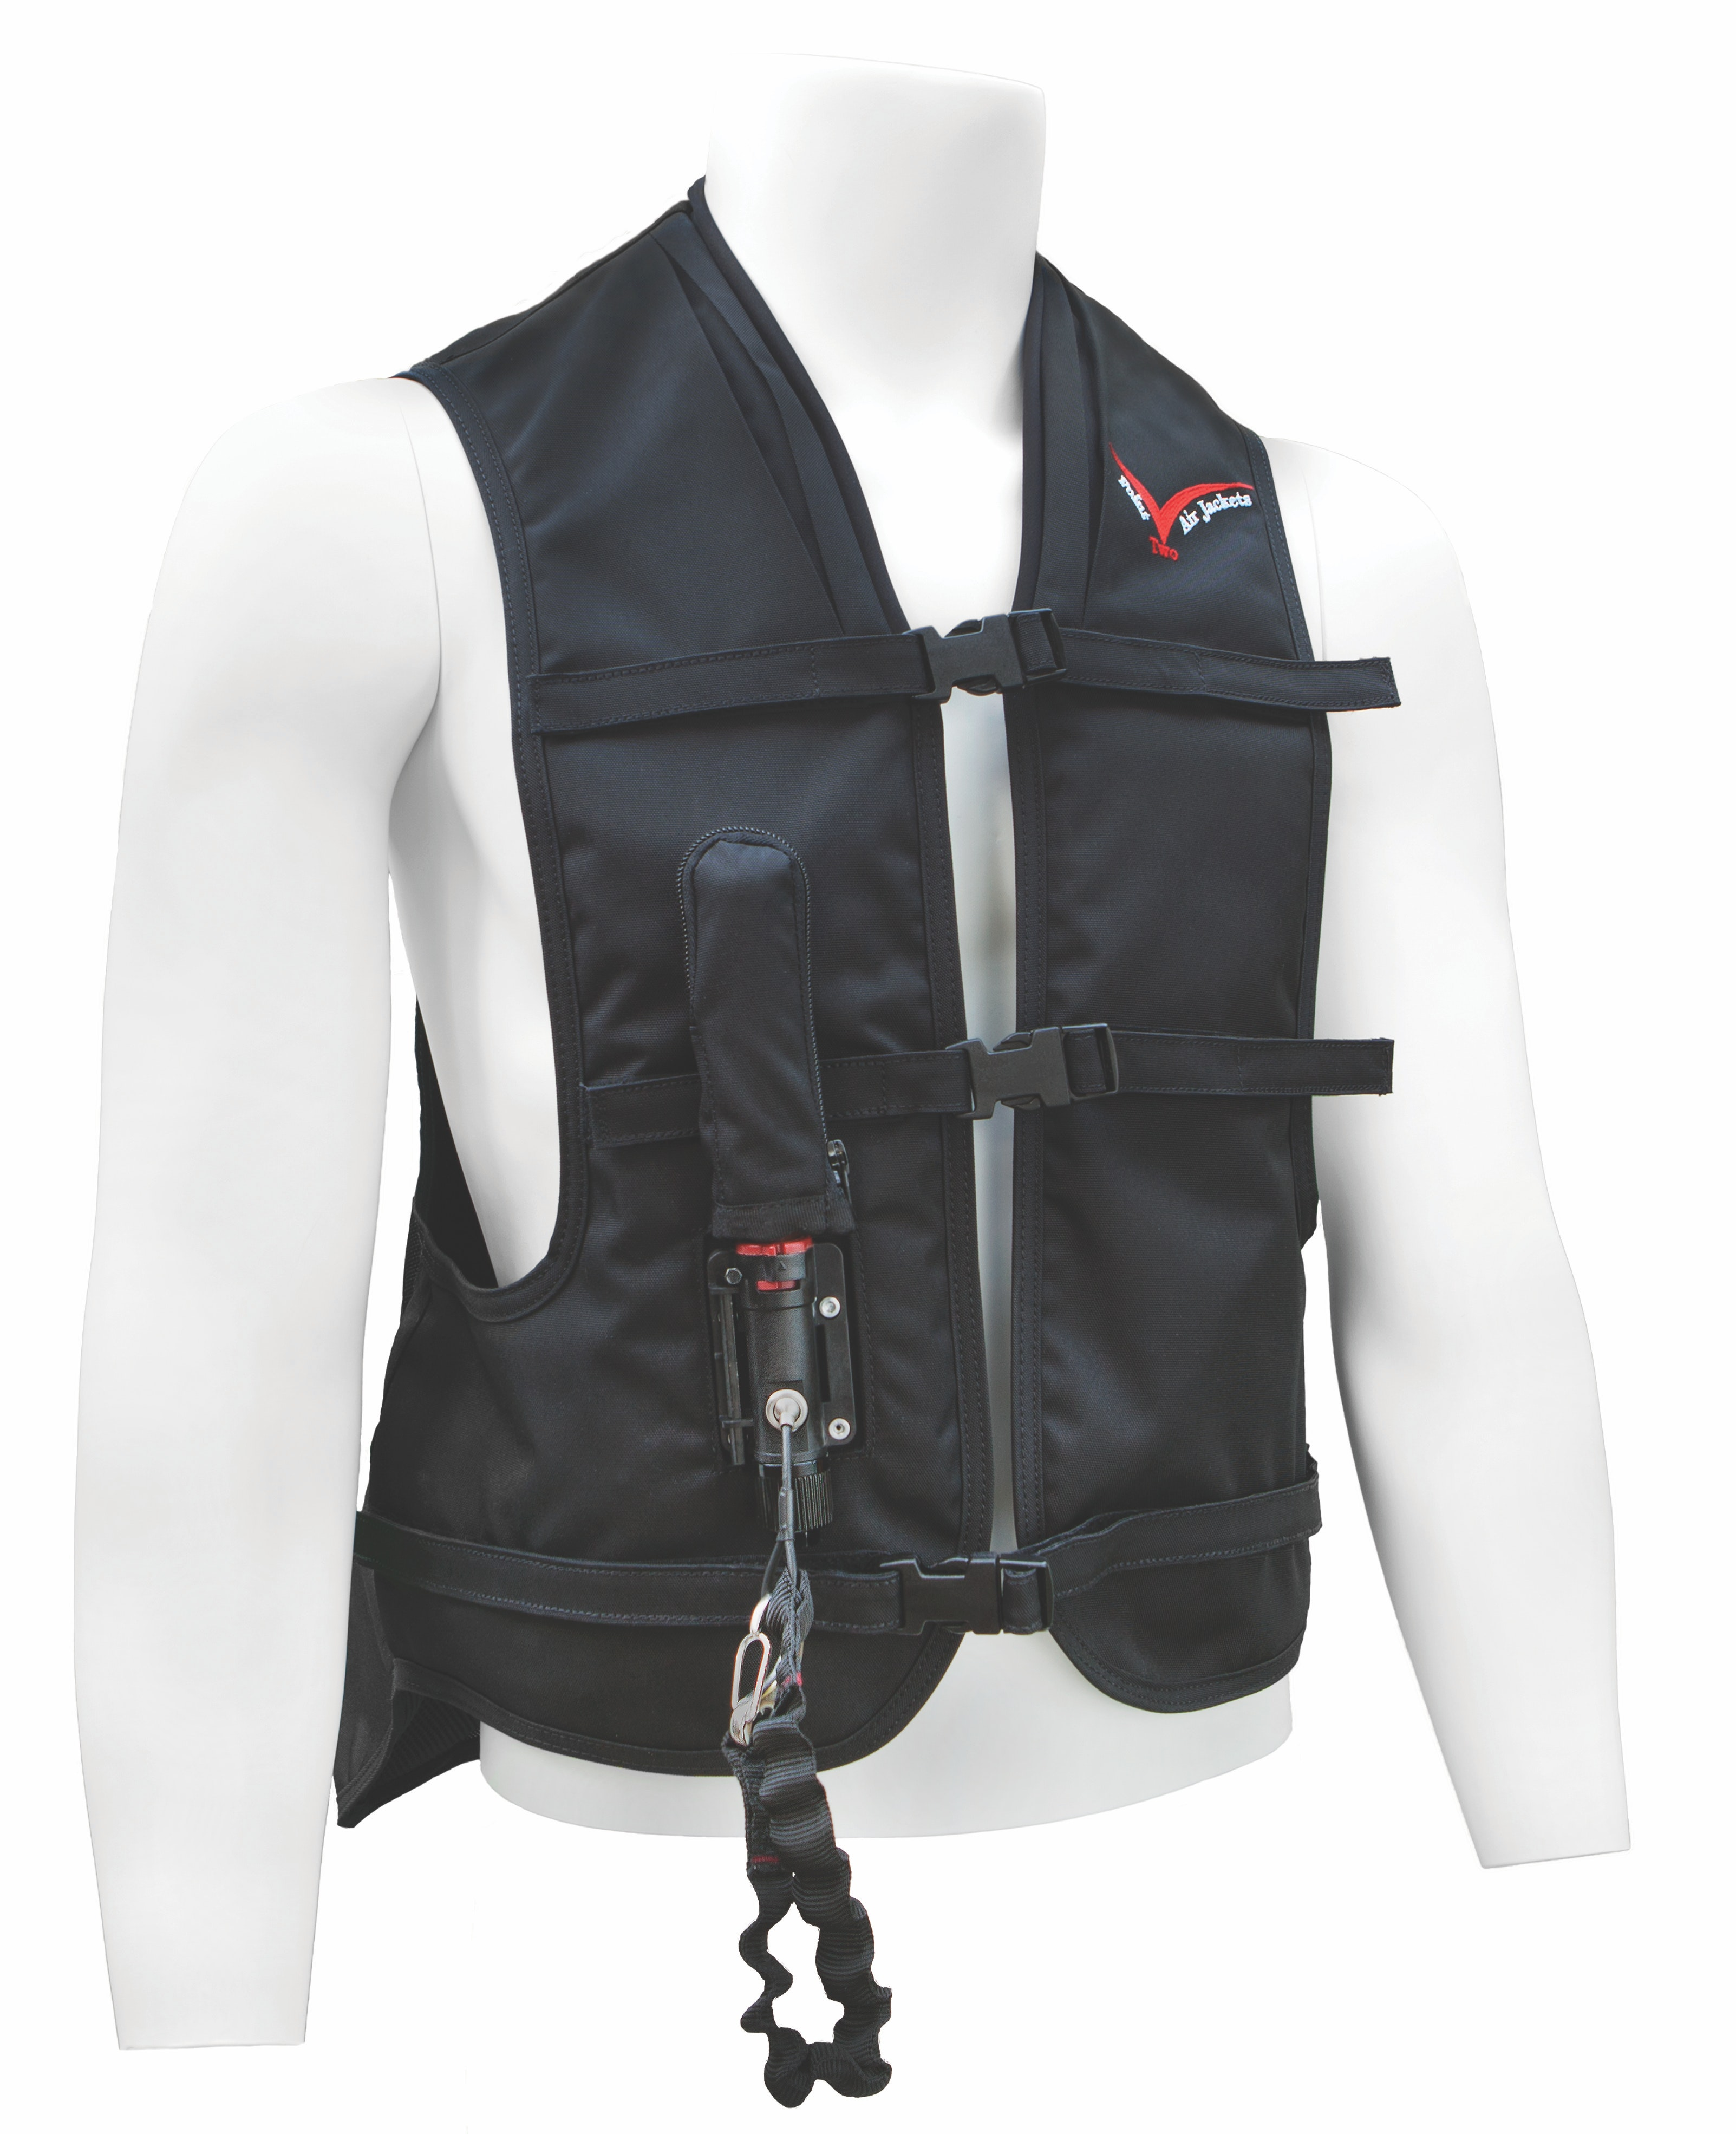 Point Two ProAir vest sweepstakes